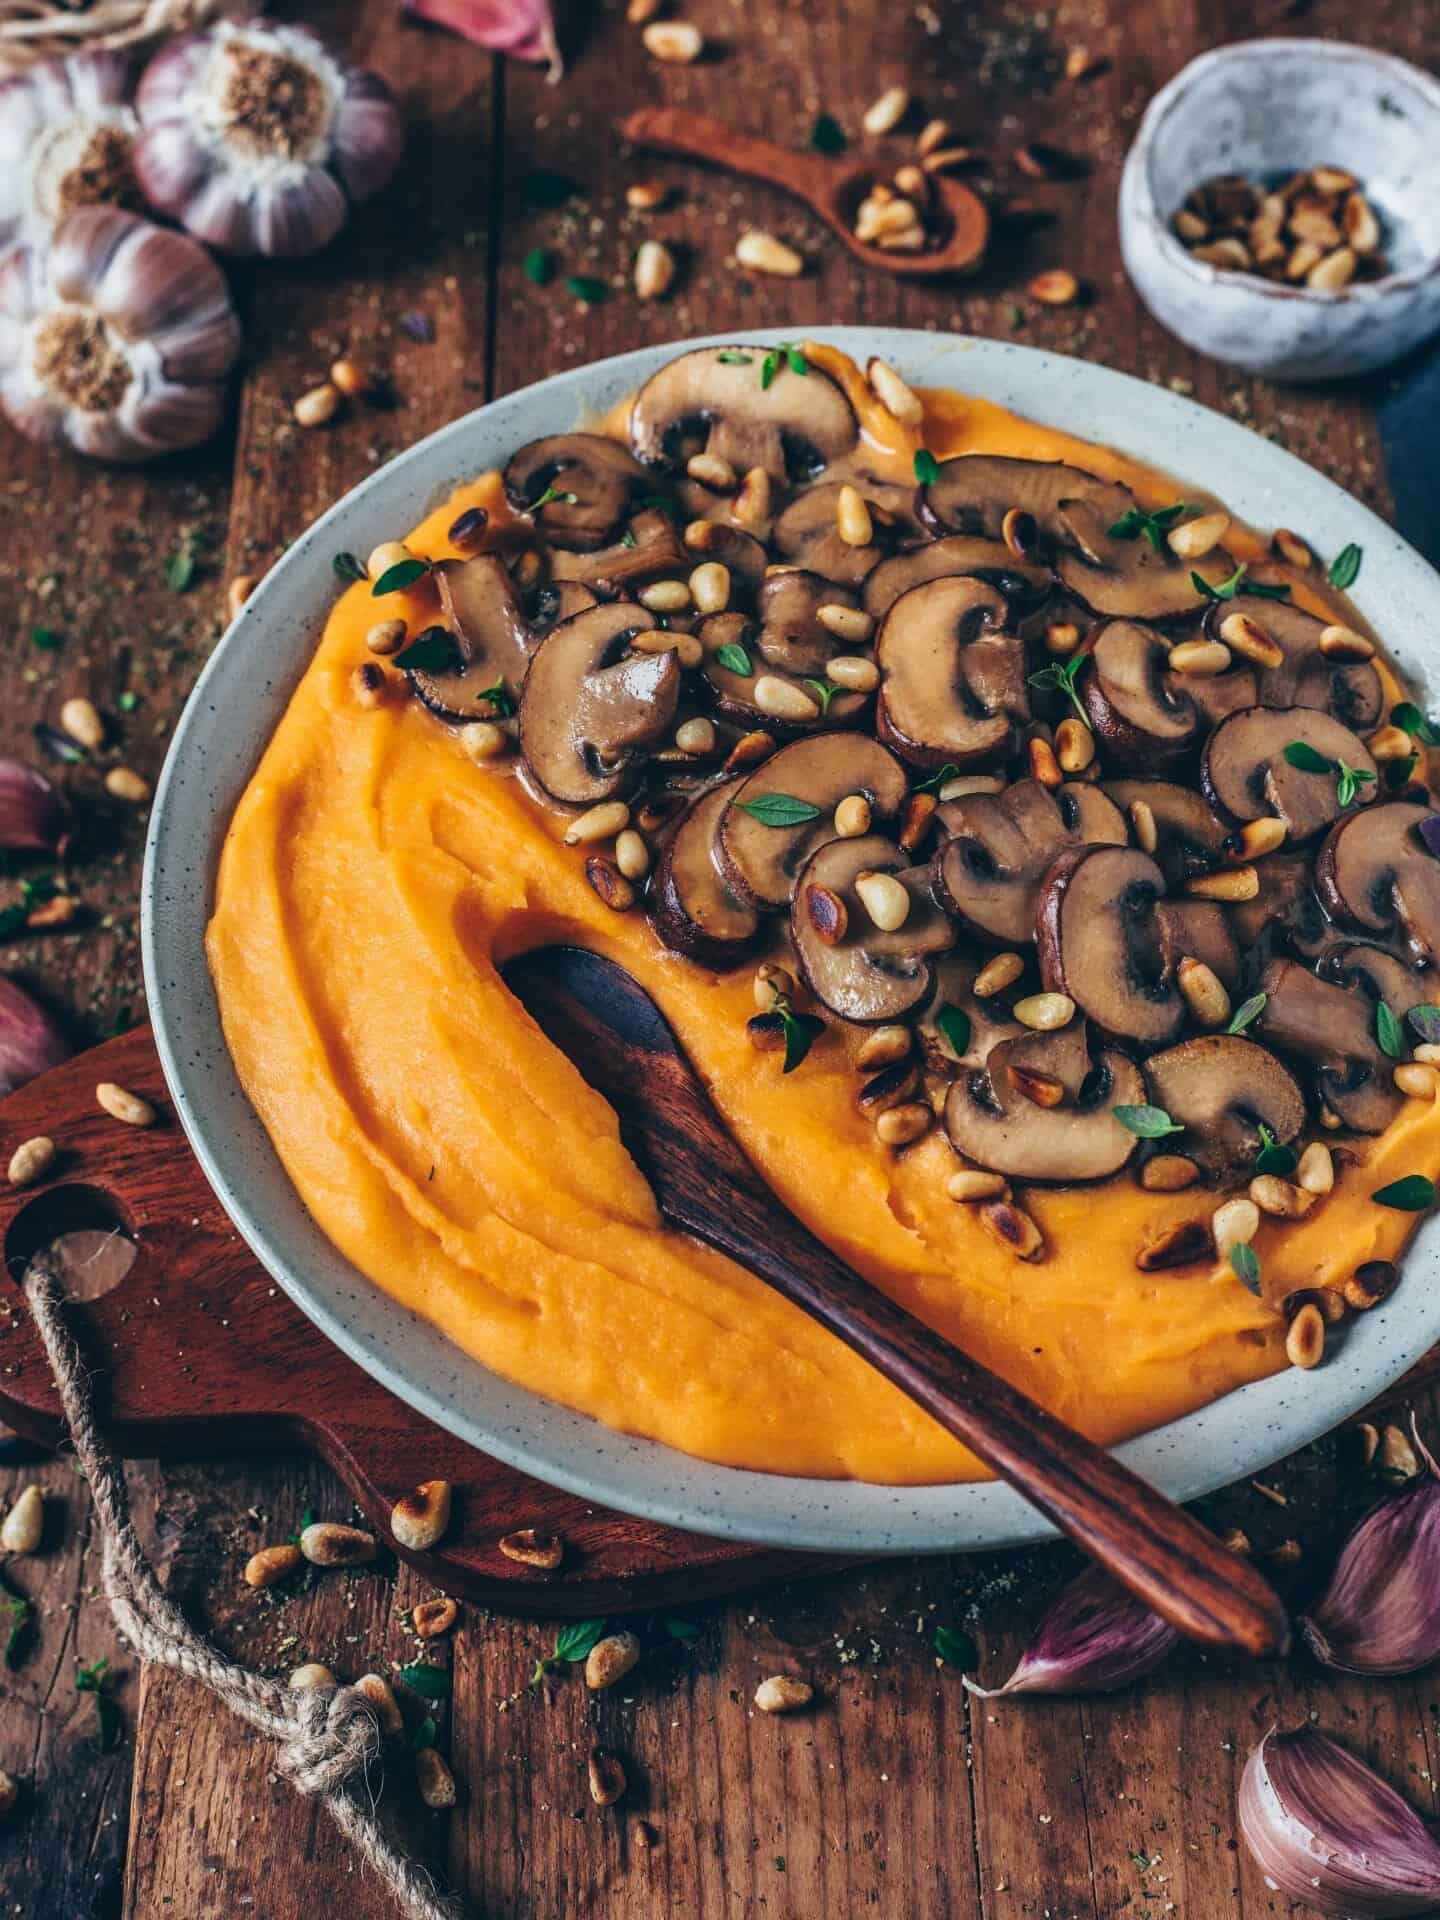 This creamy mashed sweet potatoes with vegan mushroom gravy is very easy to make, healthy, plant-based and so delicious! It's a simple recipe that is comforting, flavorful, hearty and satisfying.